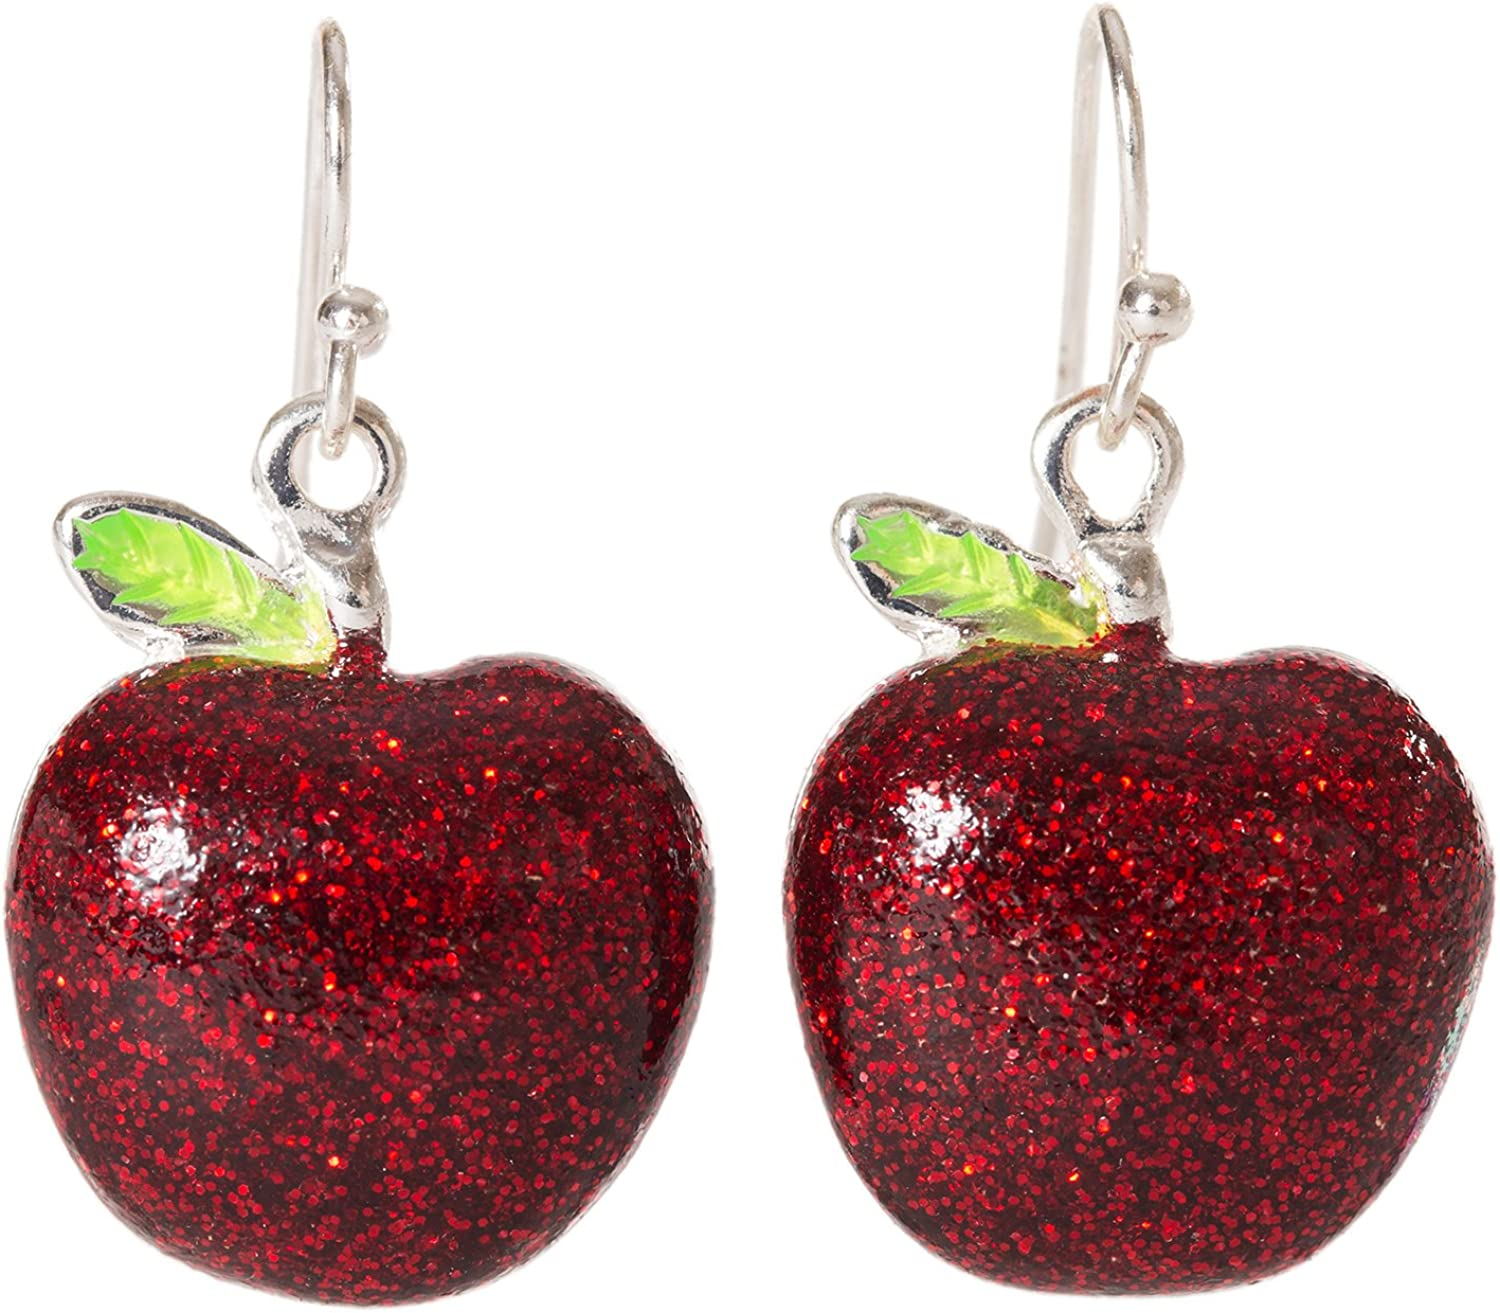 Artisan Owl - Red Apple Sparkling Enamel Polished Silver Tone Fruit Dangle Earrings